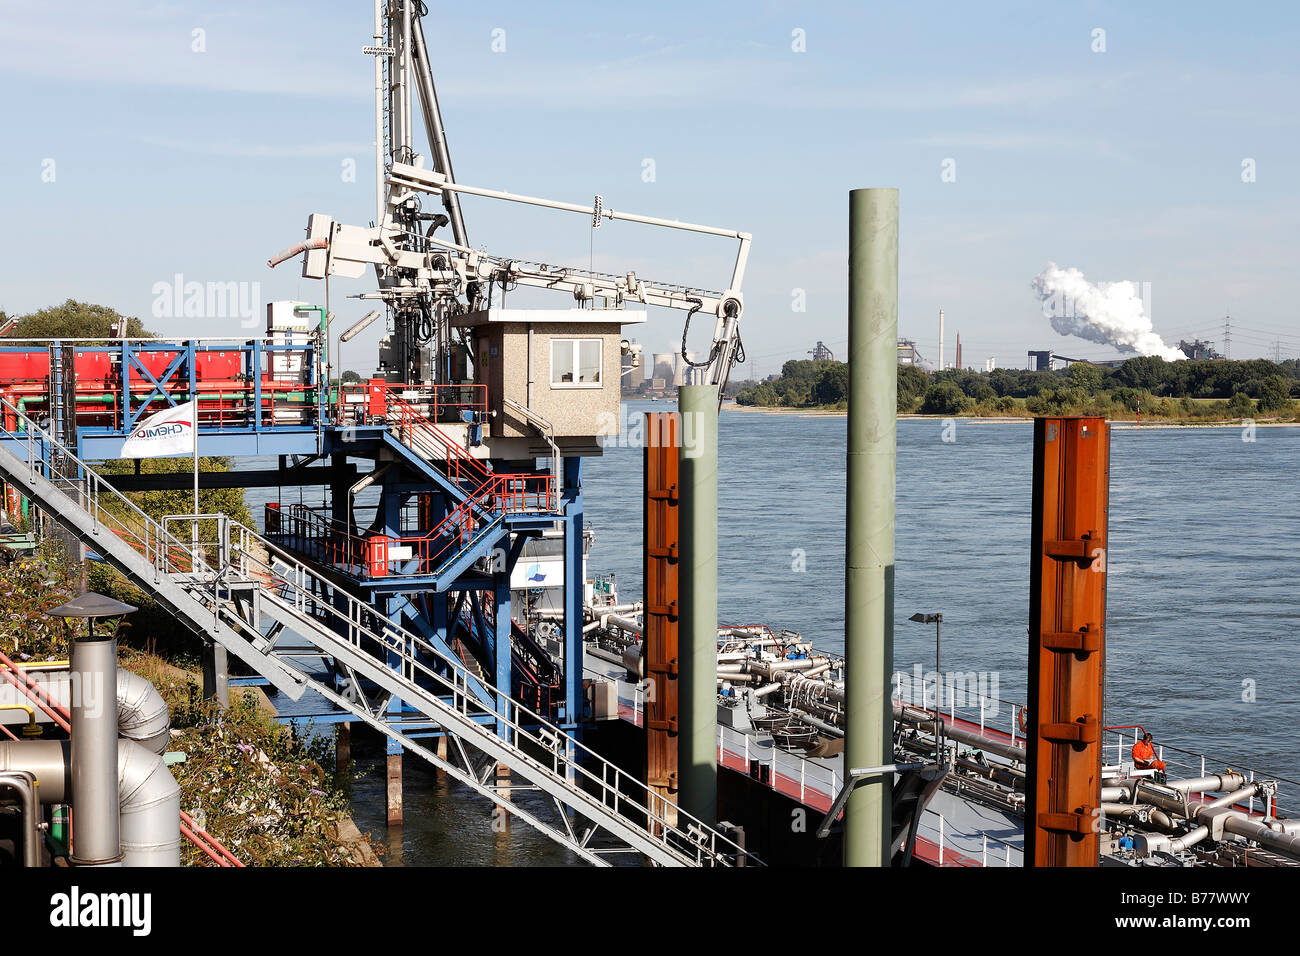 Bayer factory Krefeld-Uerdingen, chemical plant, tanker with chemicals being unloaded, North Rhine-Westphalia, Germany, - Stock Image